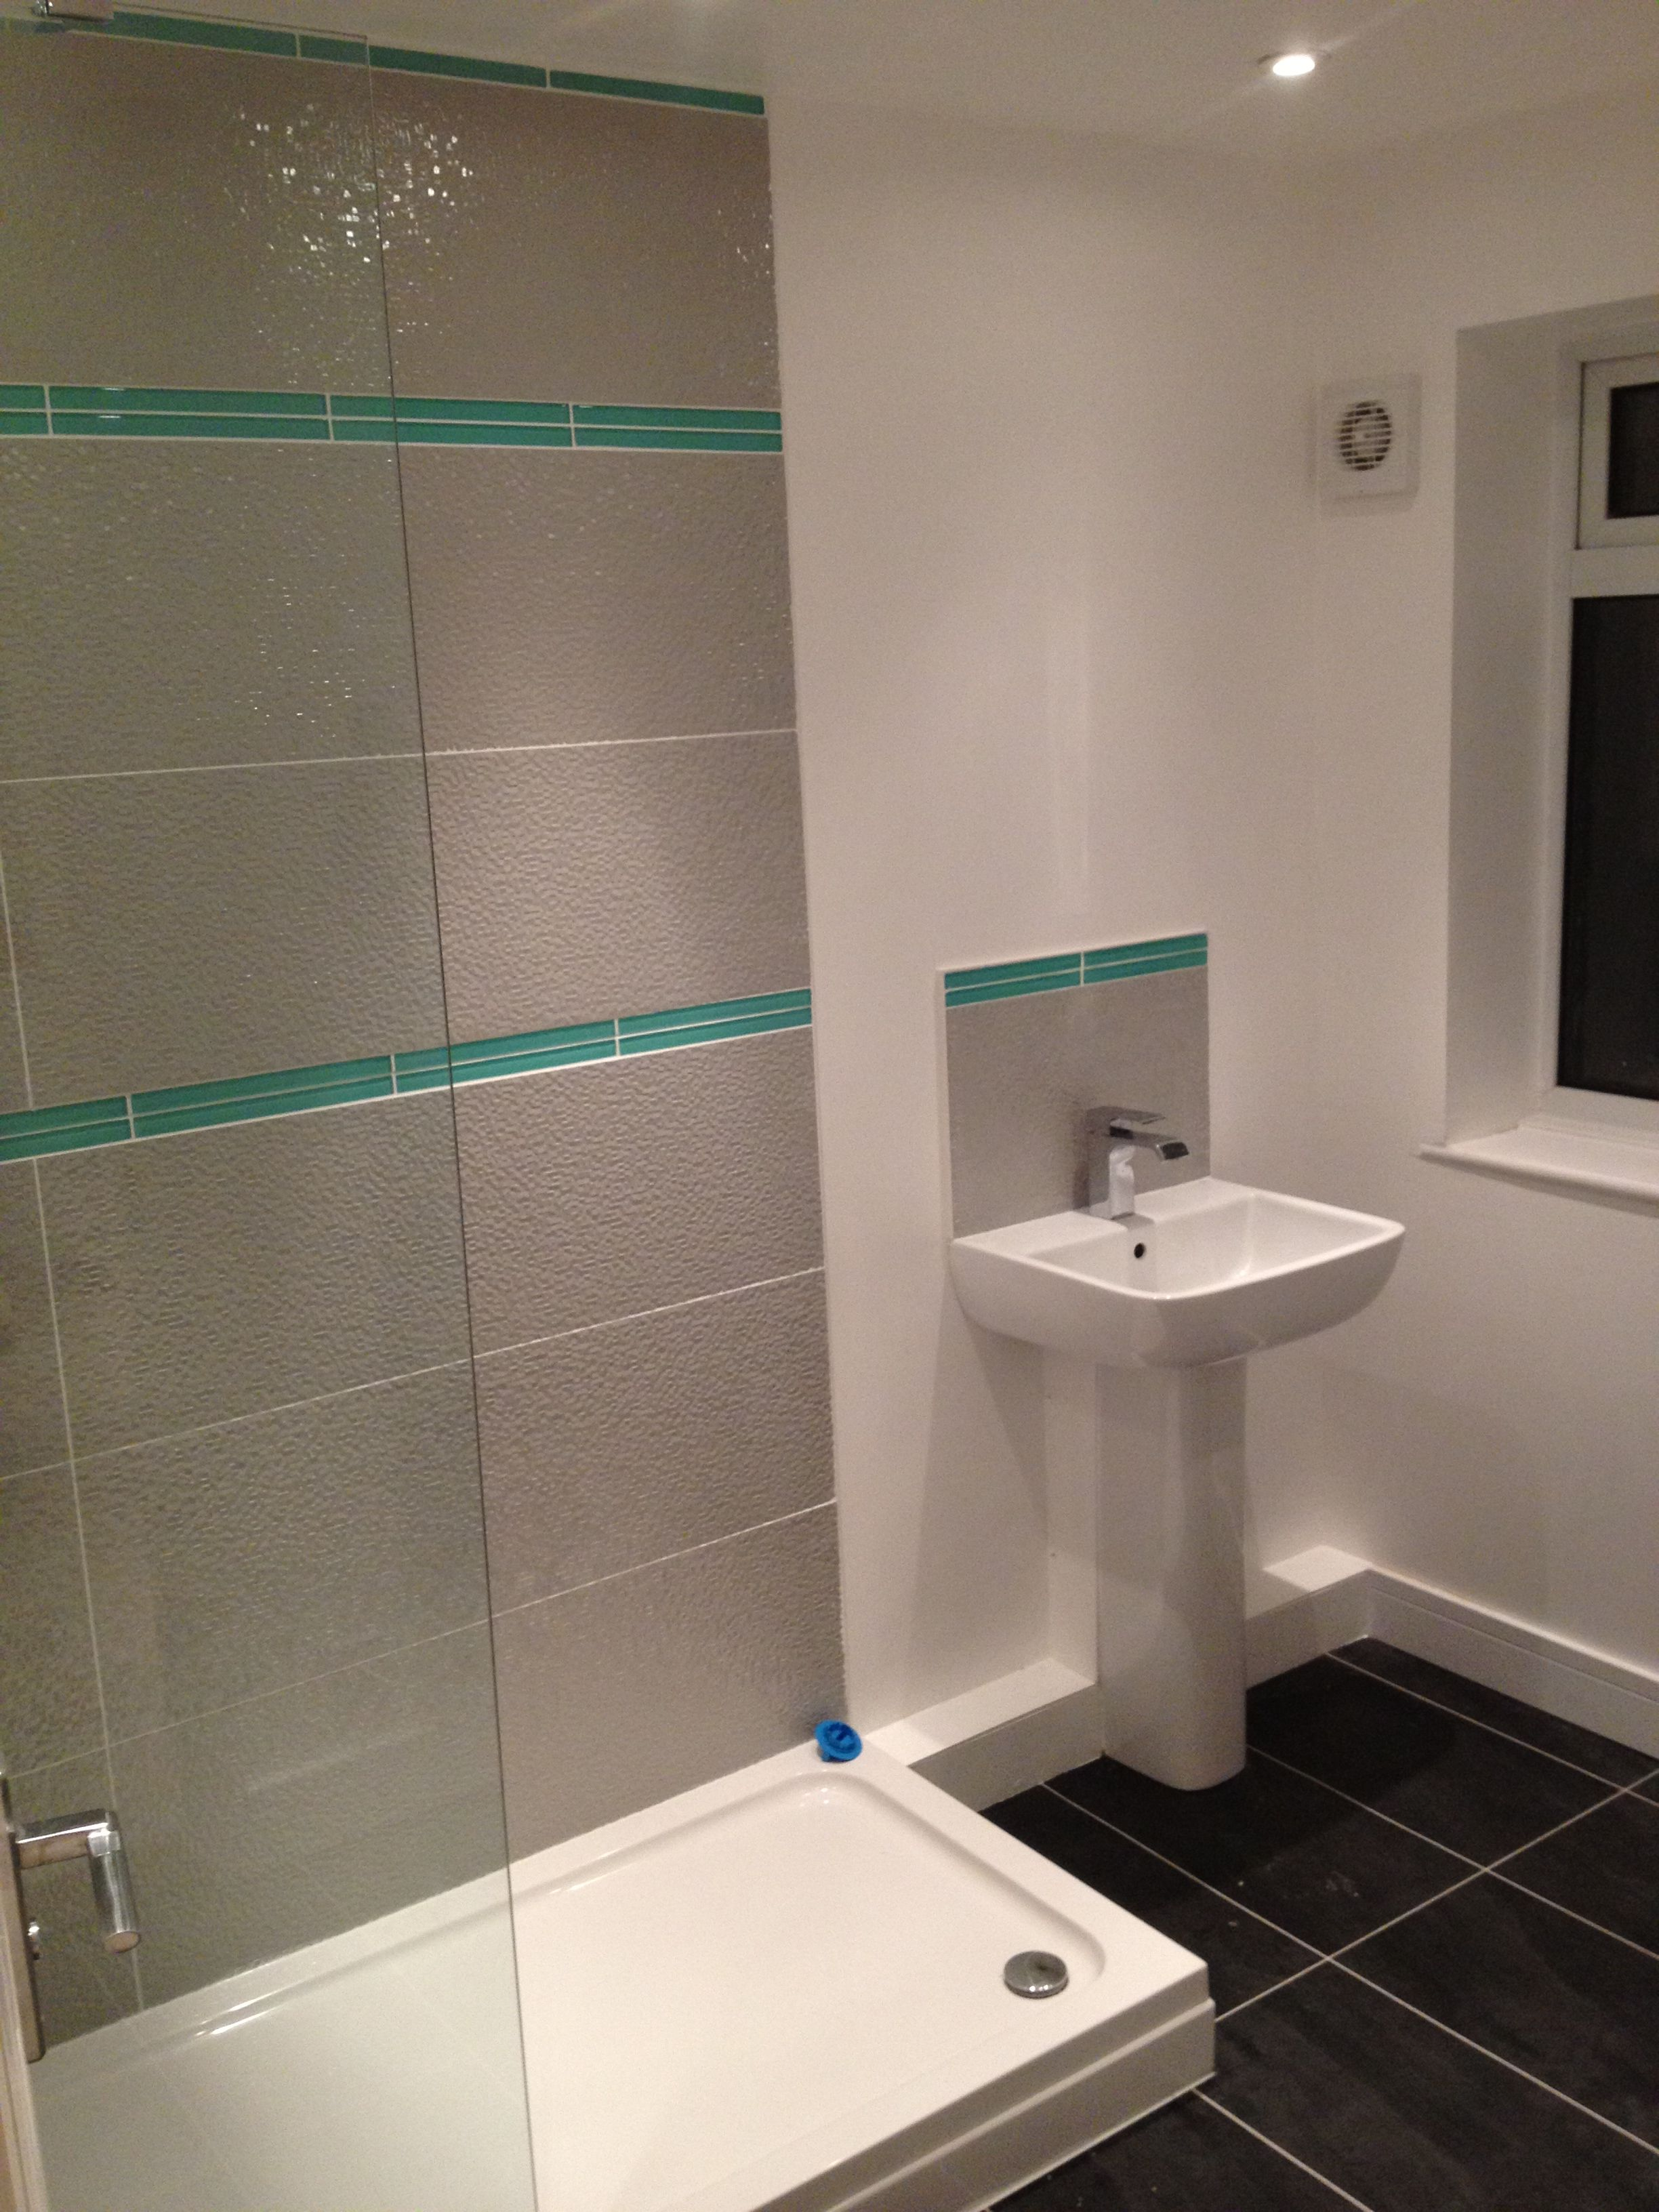 Ensuite Shower Room With Porcelenosa 1m Tiles In Gris With Style